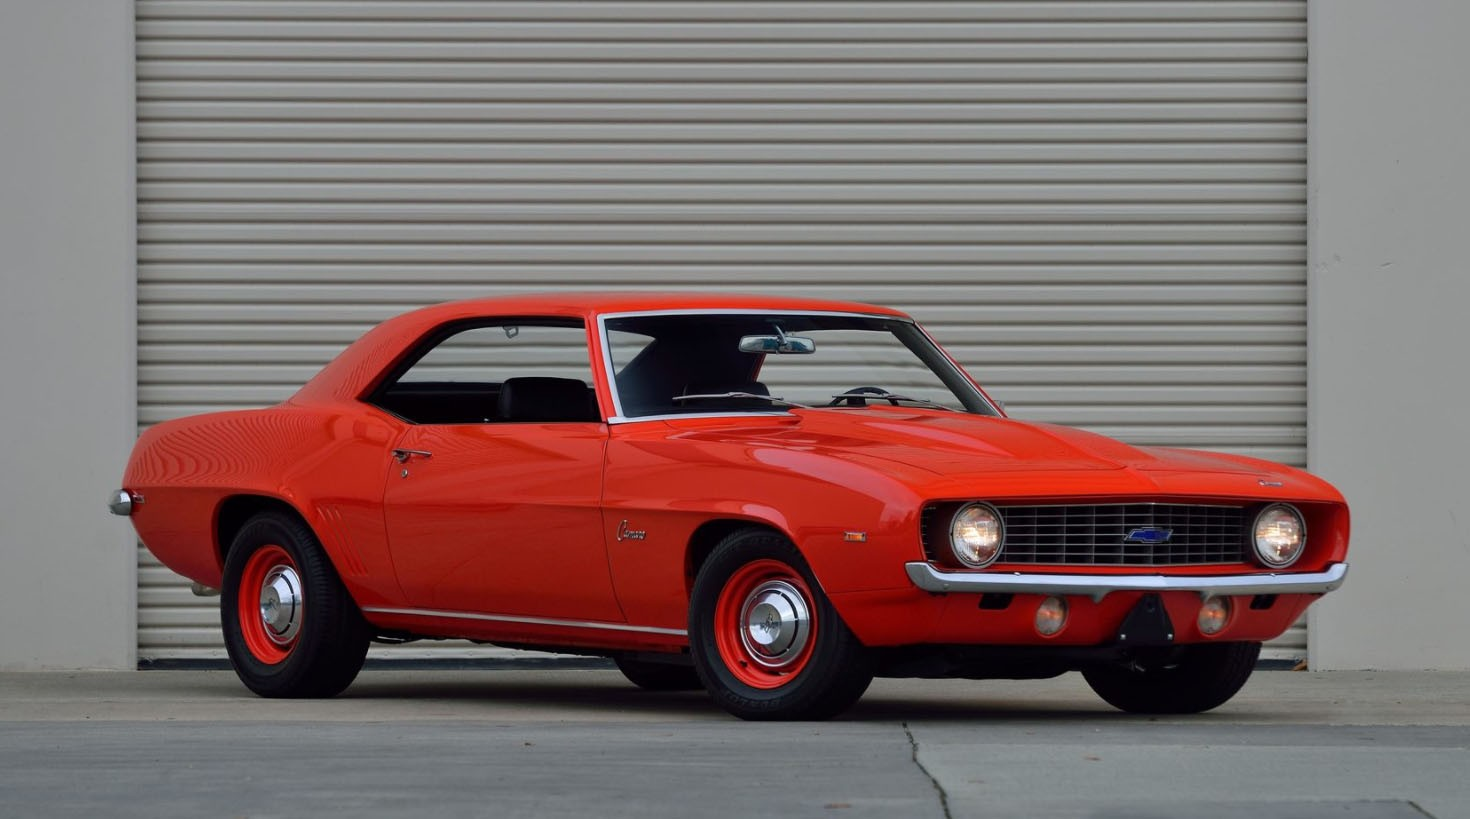 Two 1969 Chevrolet Camaro ZL1 Ultra-Rare Muscle Cars Are Looking for ...